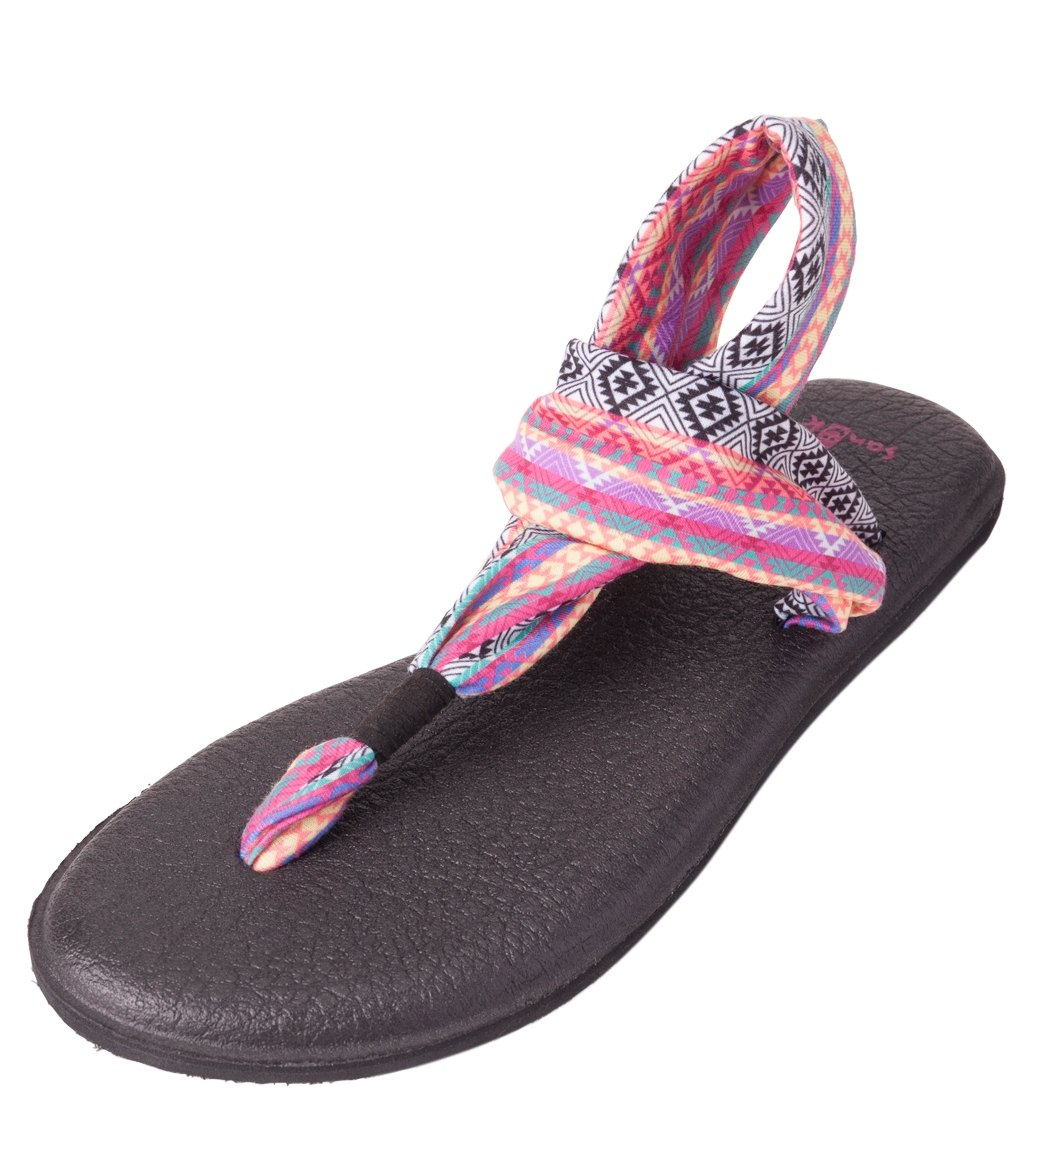 480d3a276 Sanuk Yoga Sling 2 Prints Sandal at SwimOutlet.com